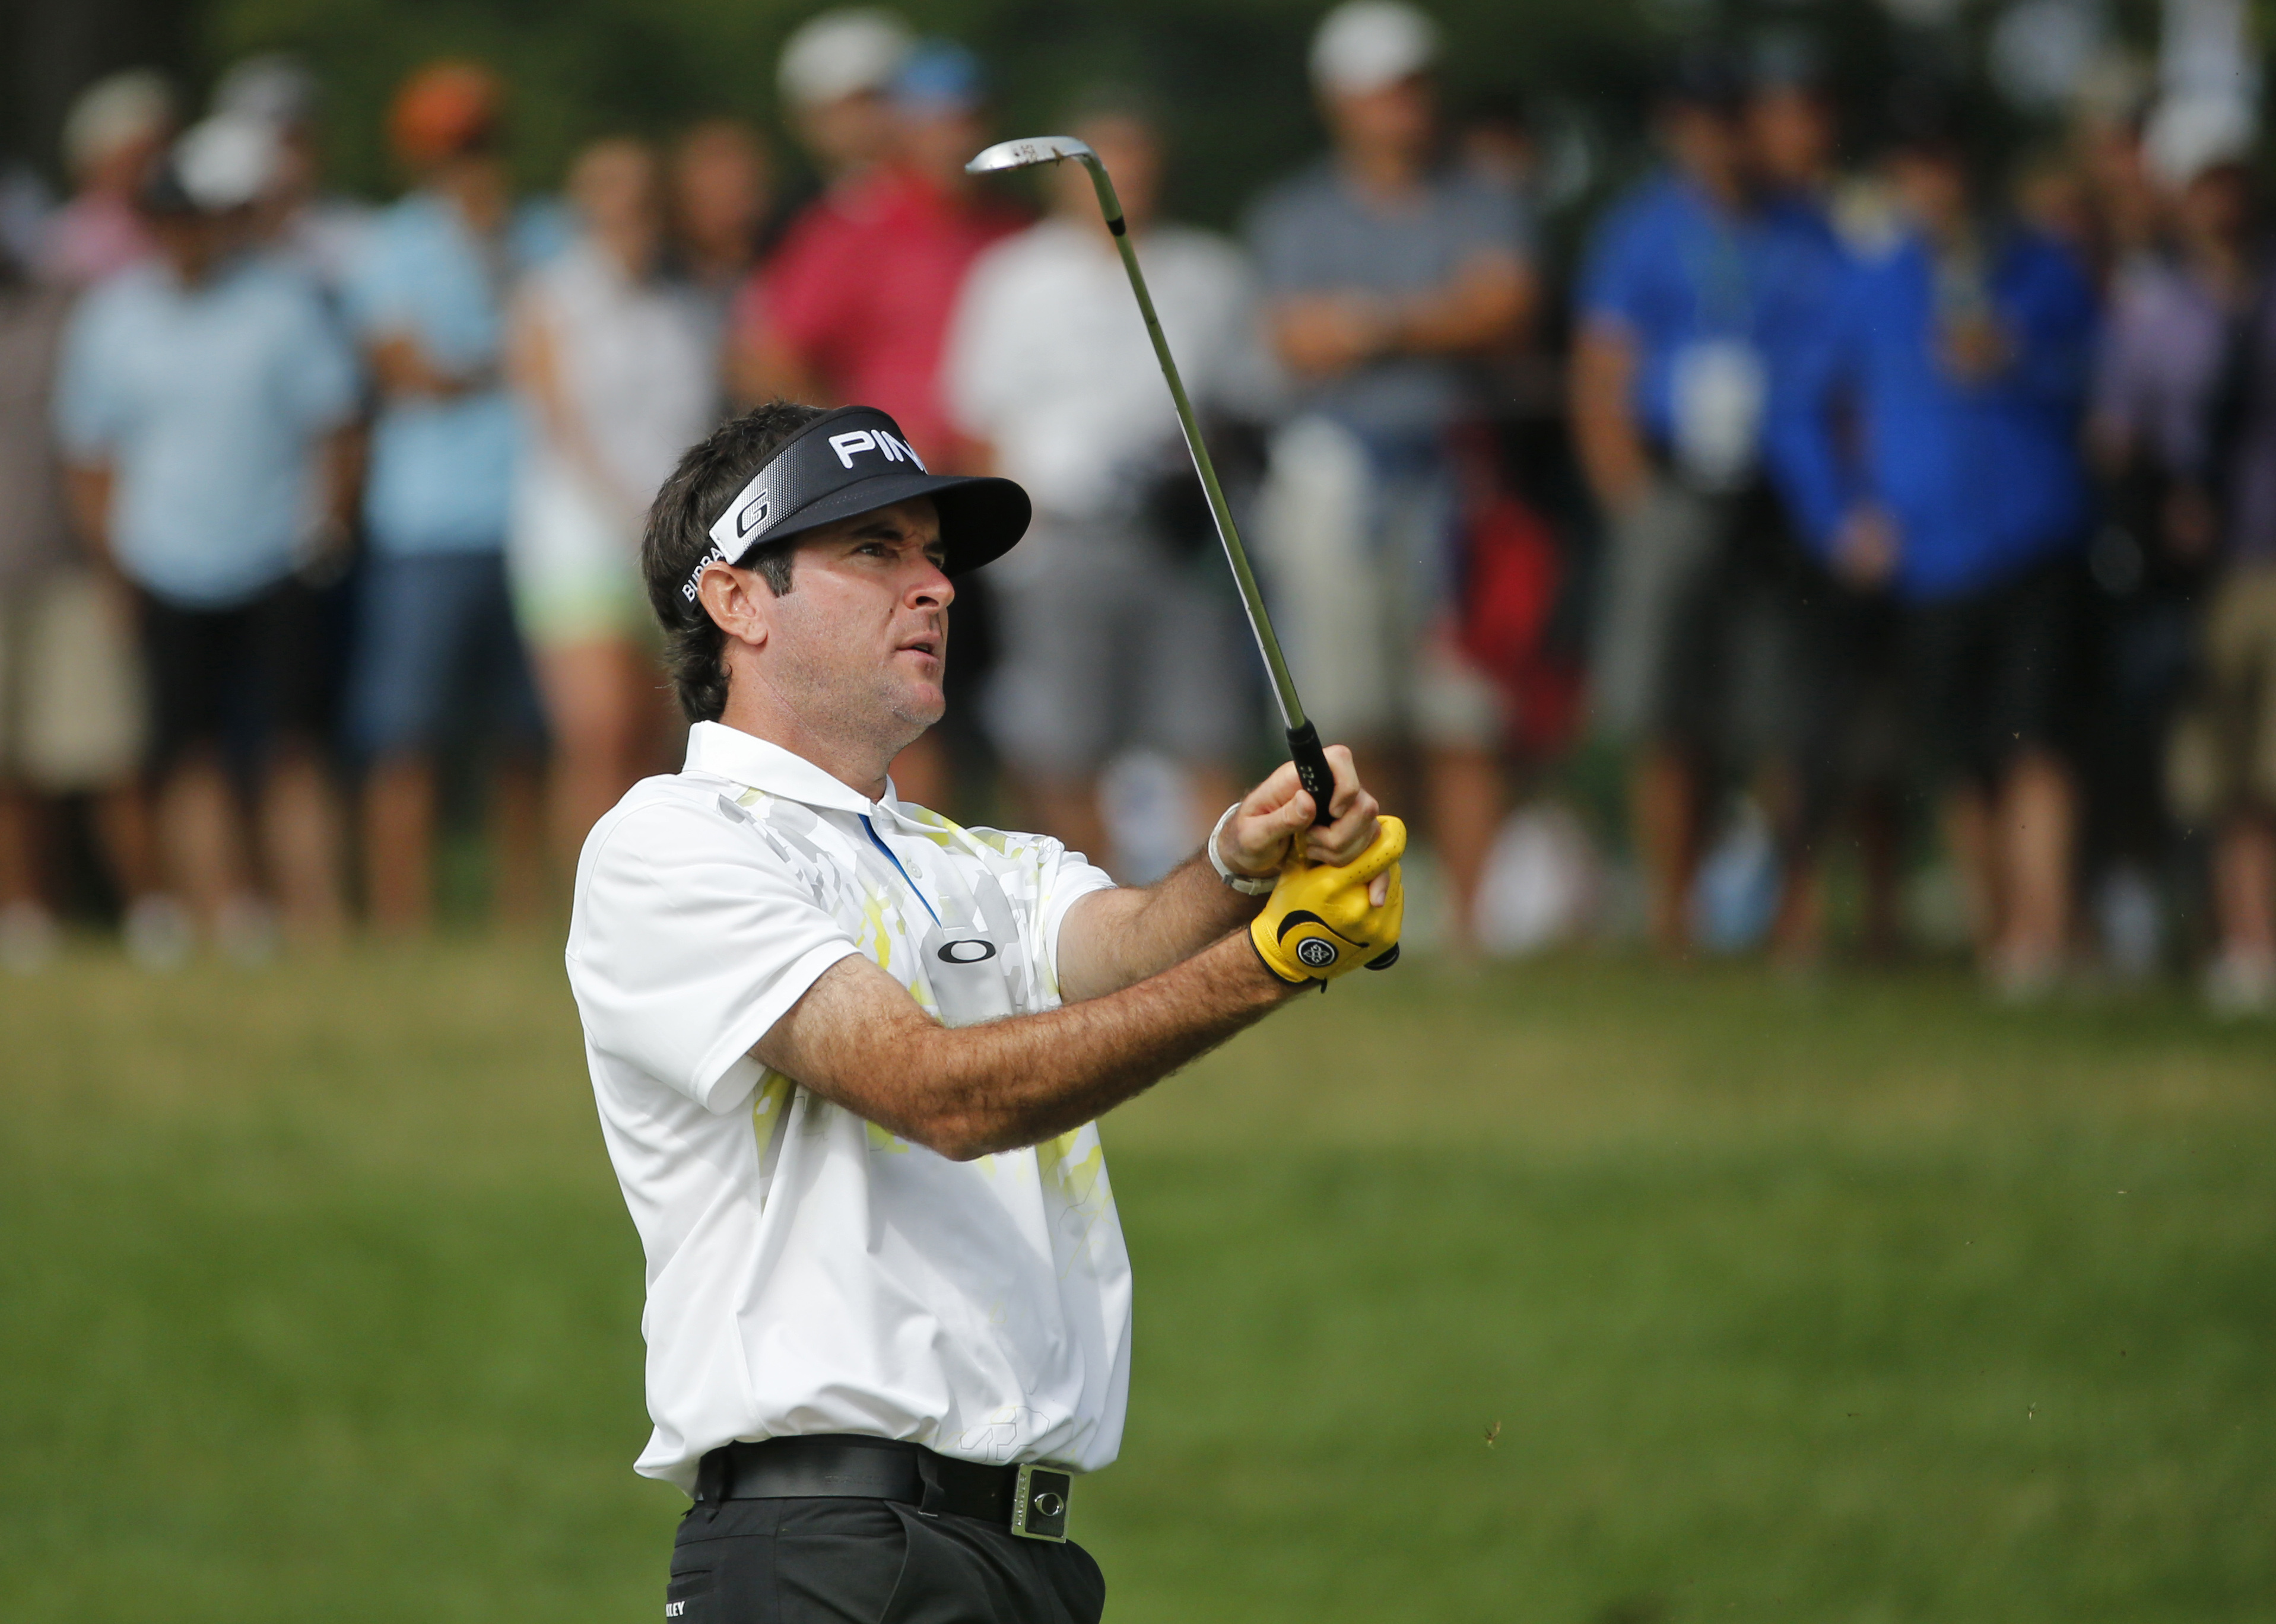 Bubba Watson watches his approach shot on the 14th hole during the second round of the PGA Championship golf tournament at Baltusrol Golf Club in Springfield, N.J., Friday, July 29, 2016. (AP Photo/Mike Groll)